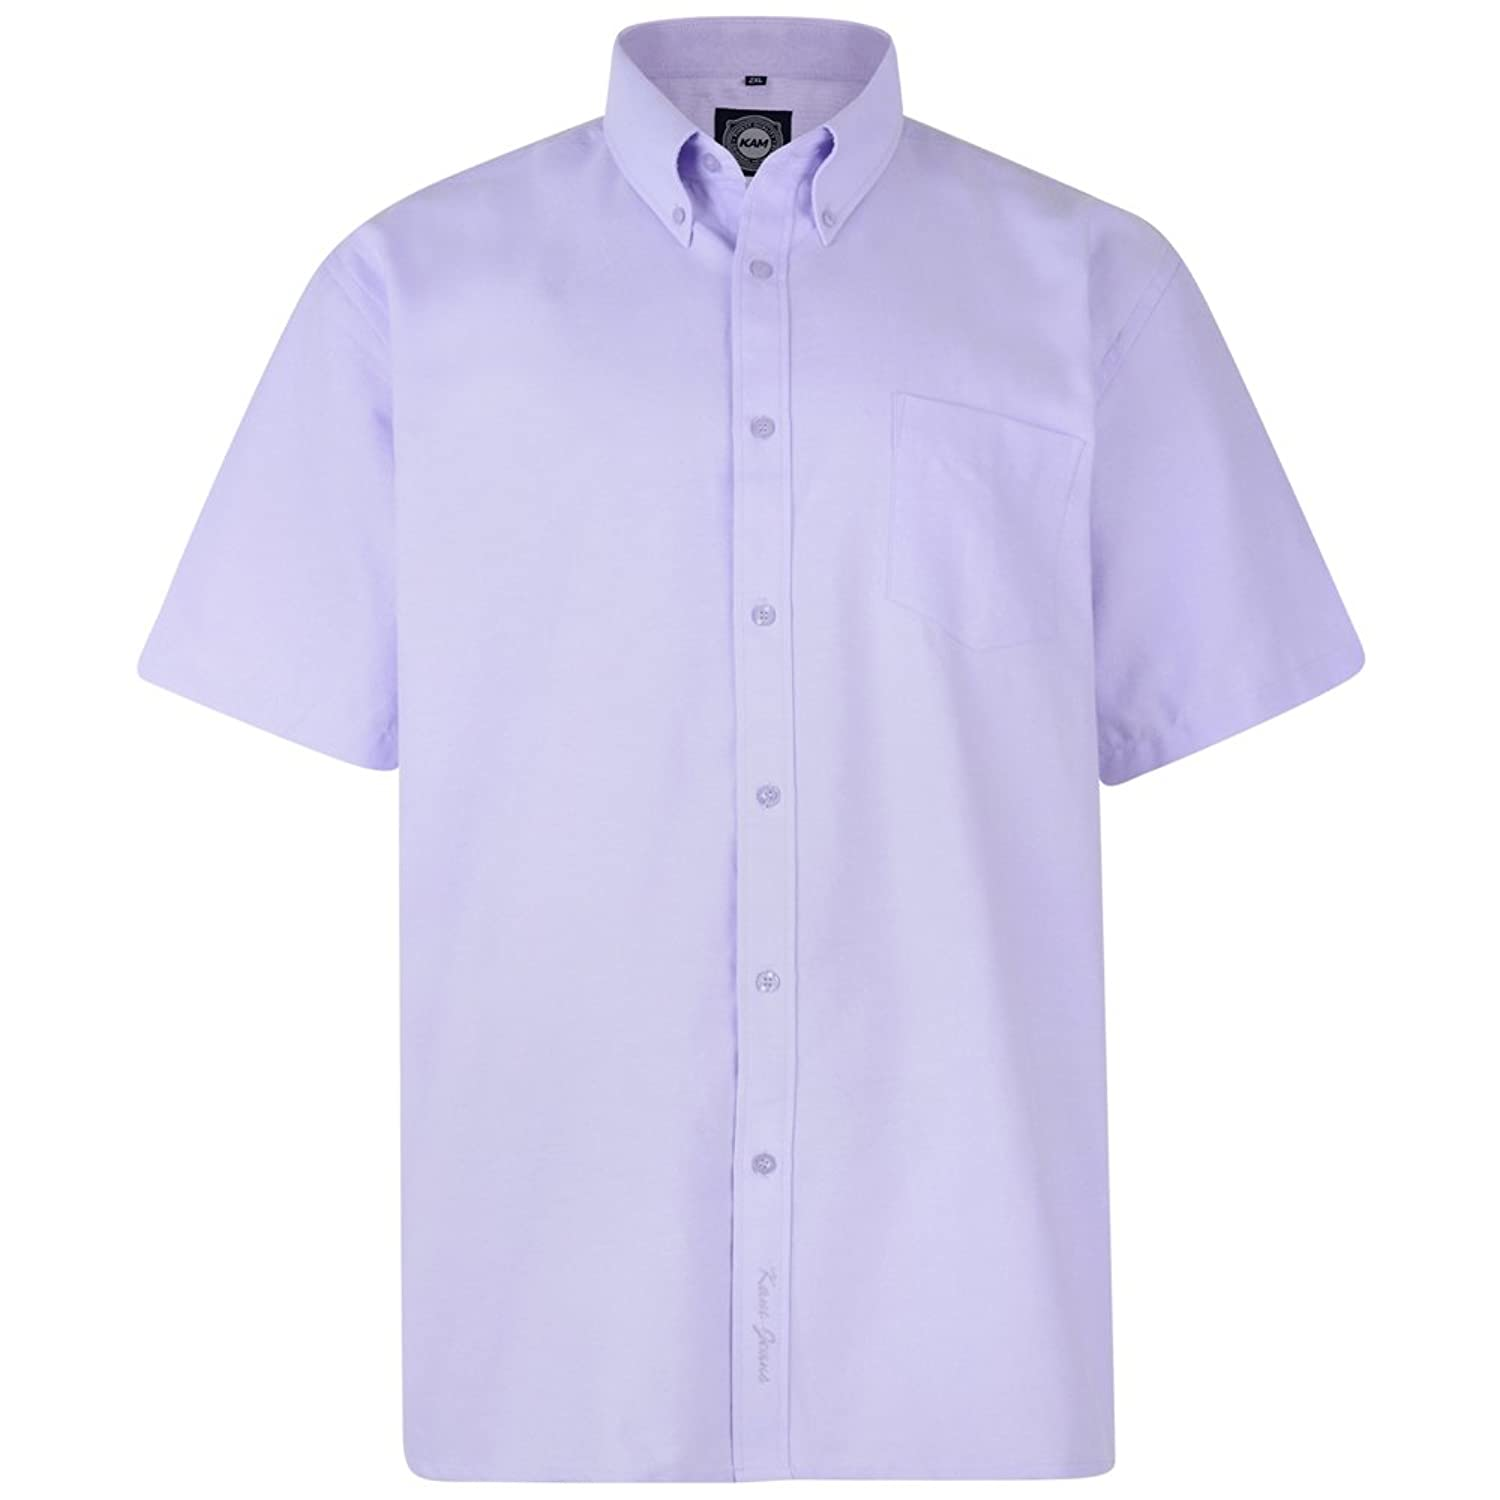 Kam Oxford Classic Short Sleeve Shirt - Lilac